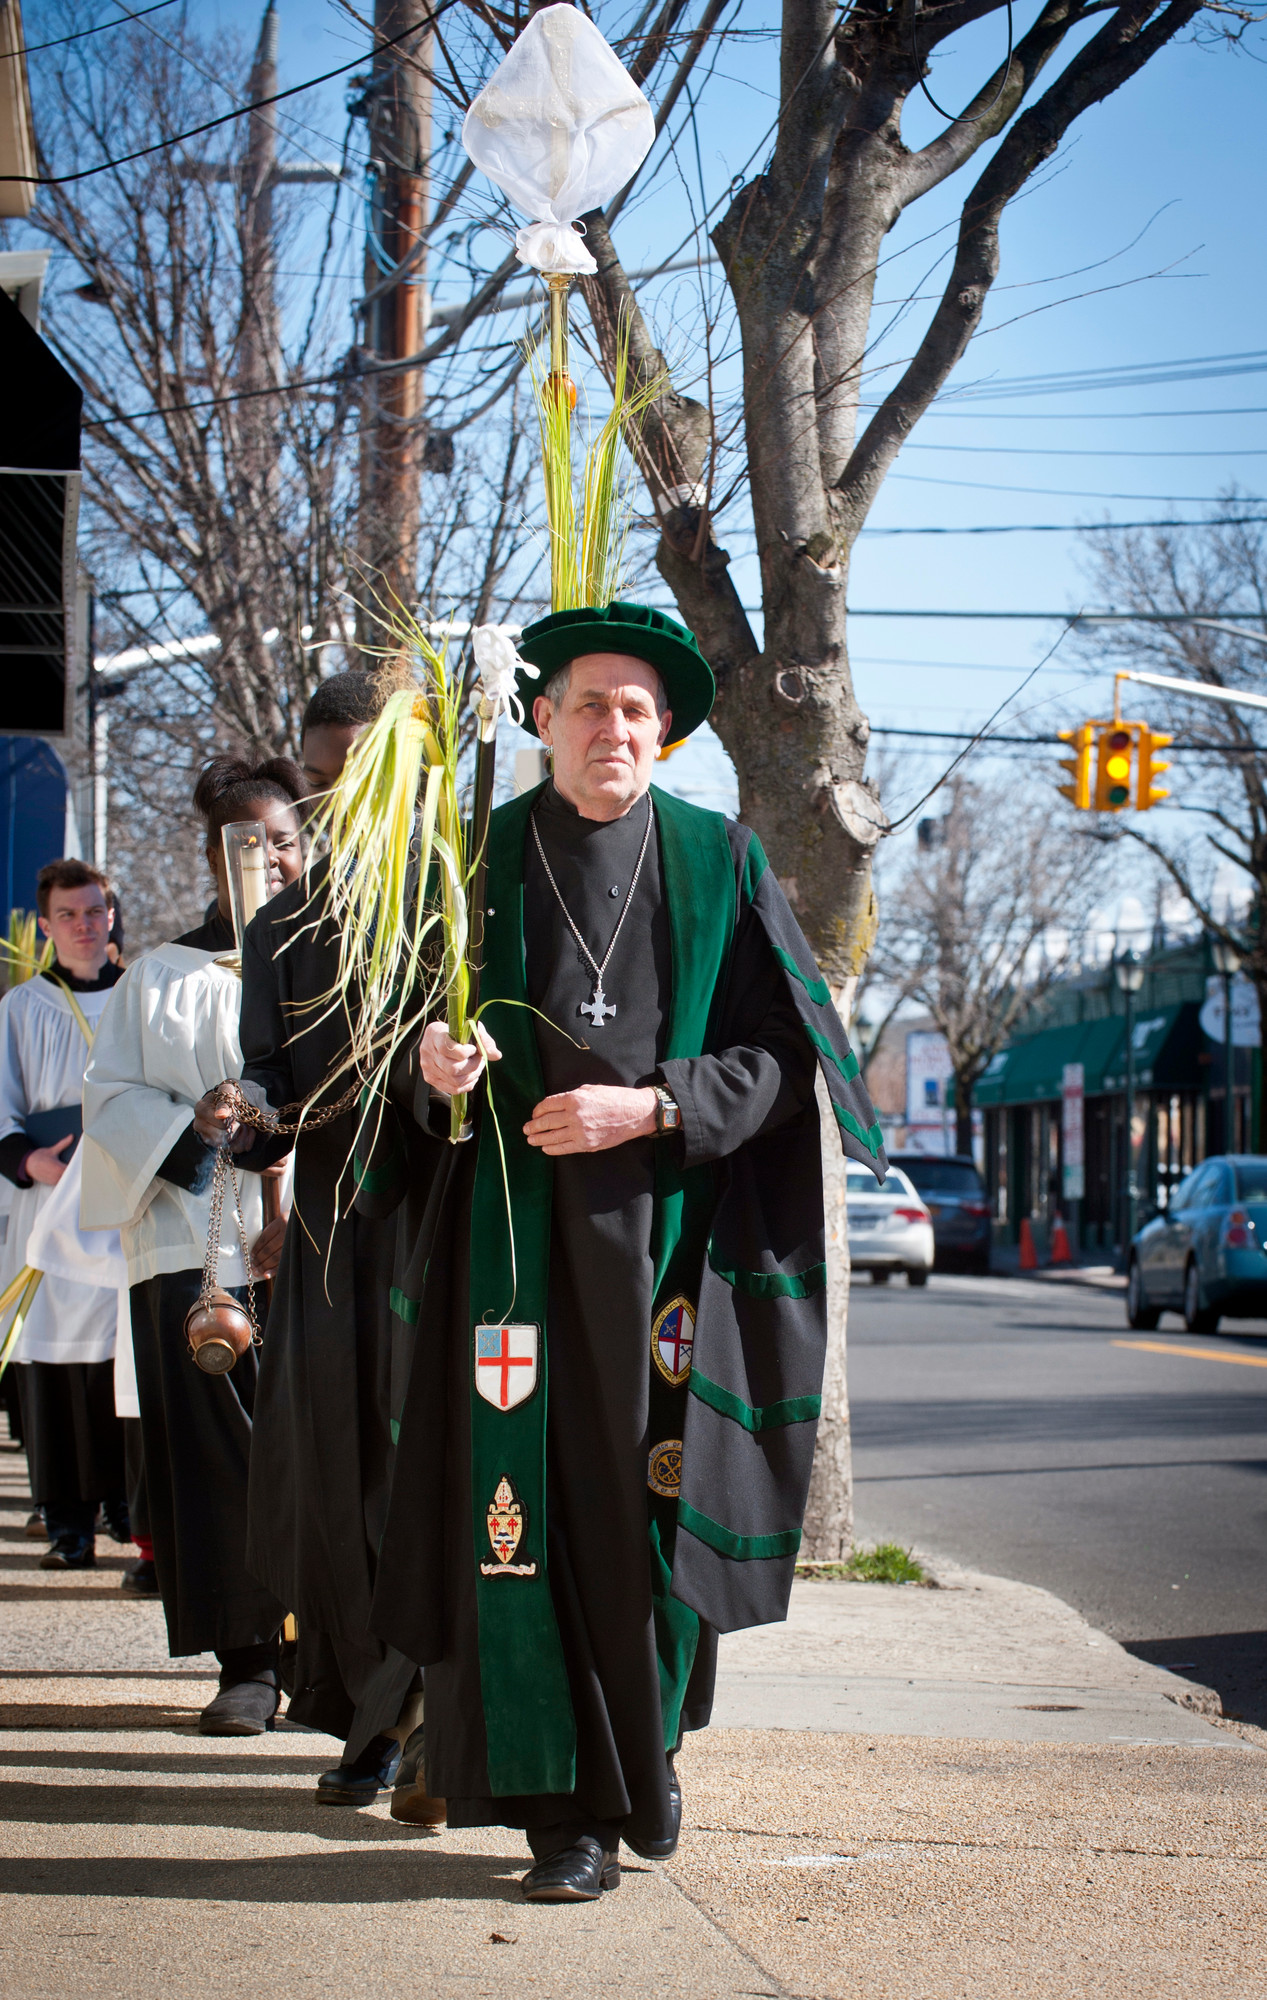 Trinity-St. John's Church in Hewlett held its annual Palm Sunday procession on March 24. Church verger Richard Walther led the march on Broadway.